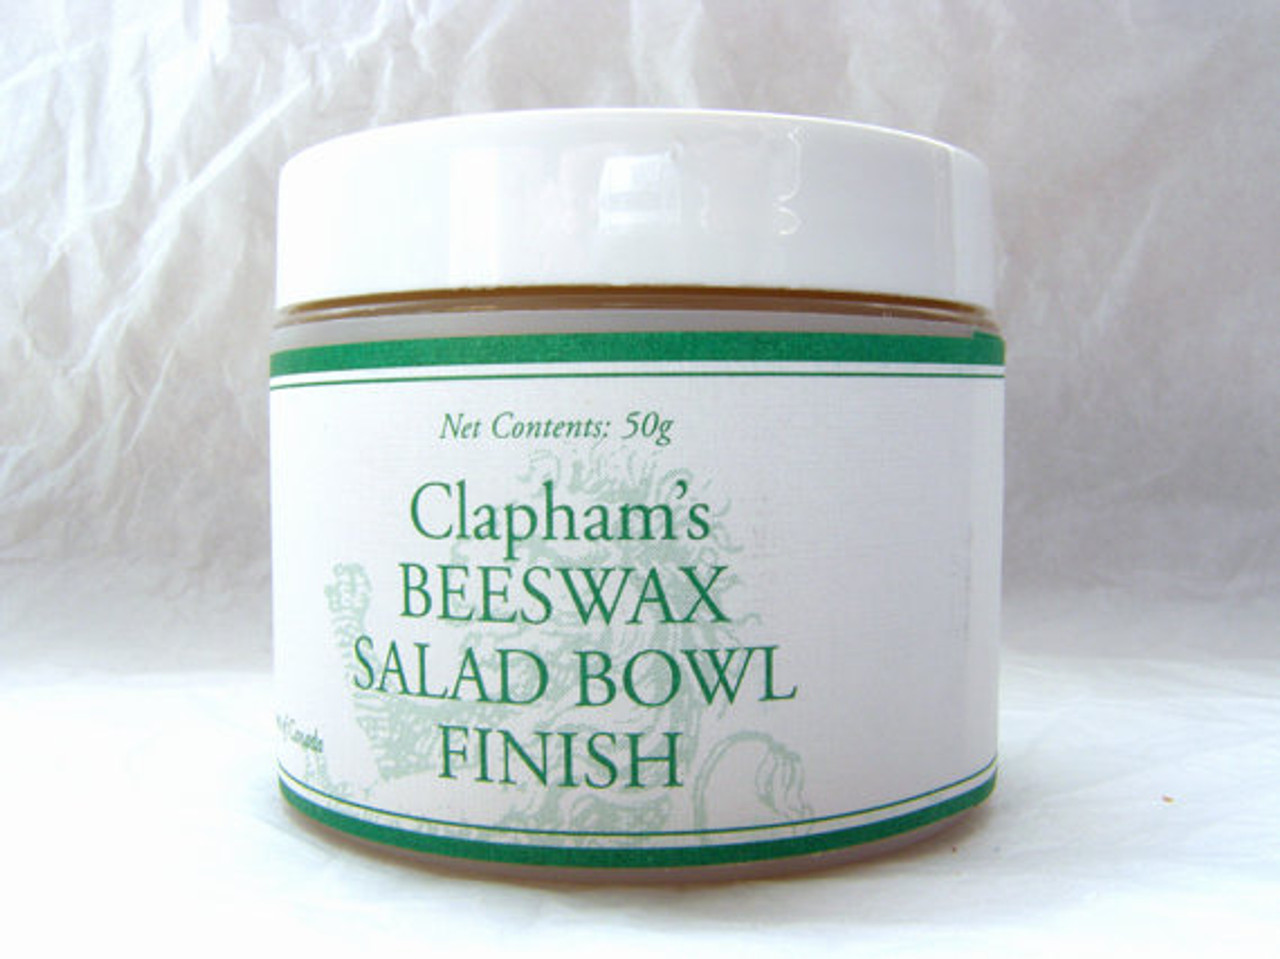 CLAPHAM'S BEESWAX SALAD BOWL FINISH